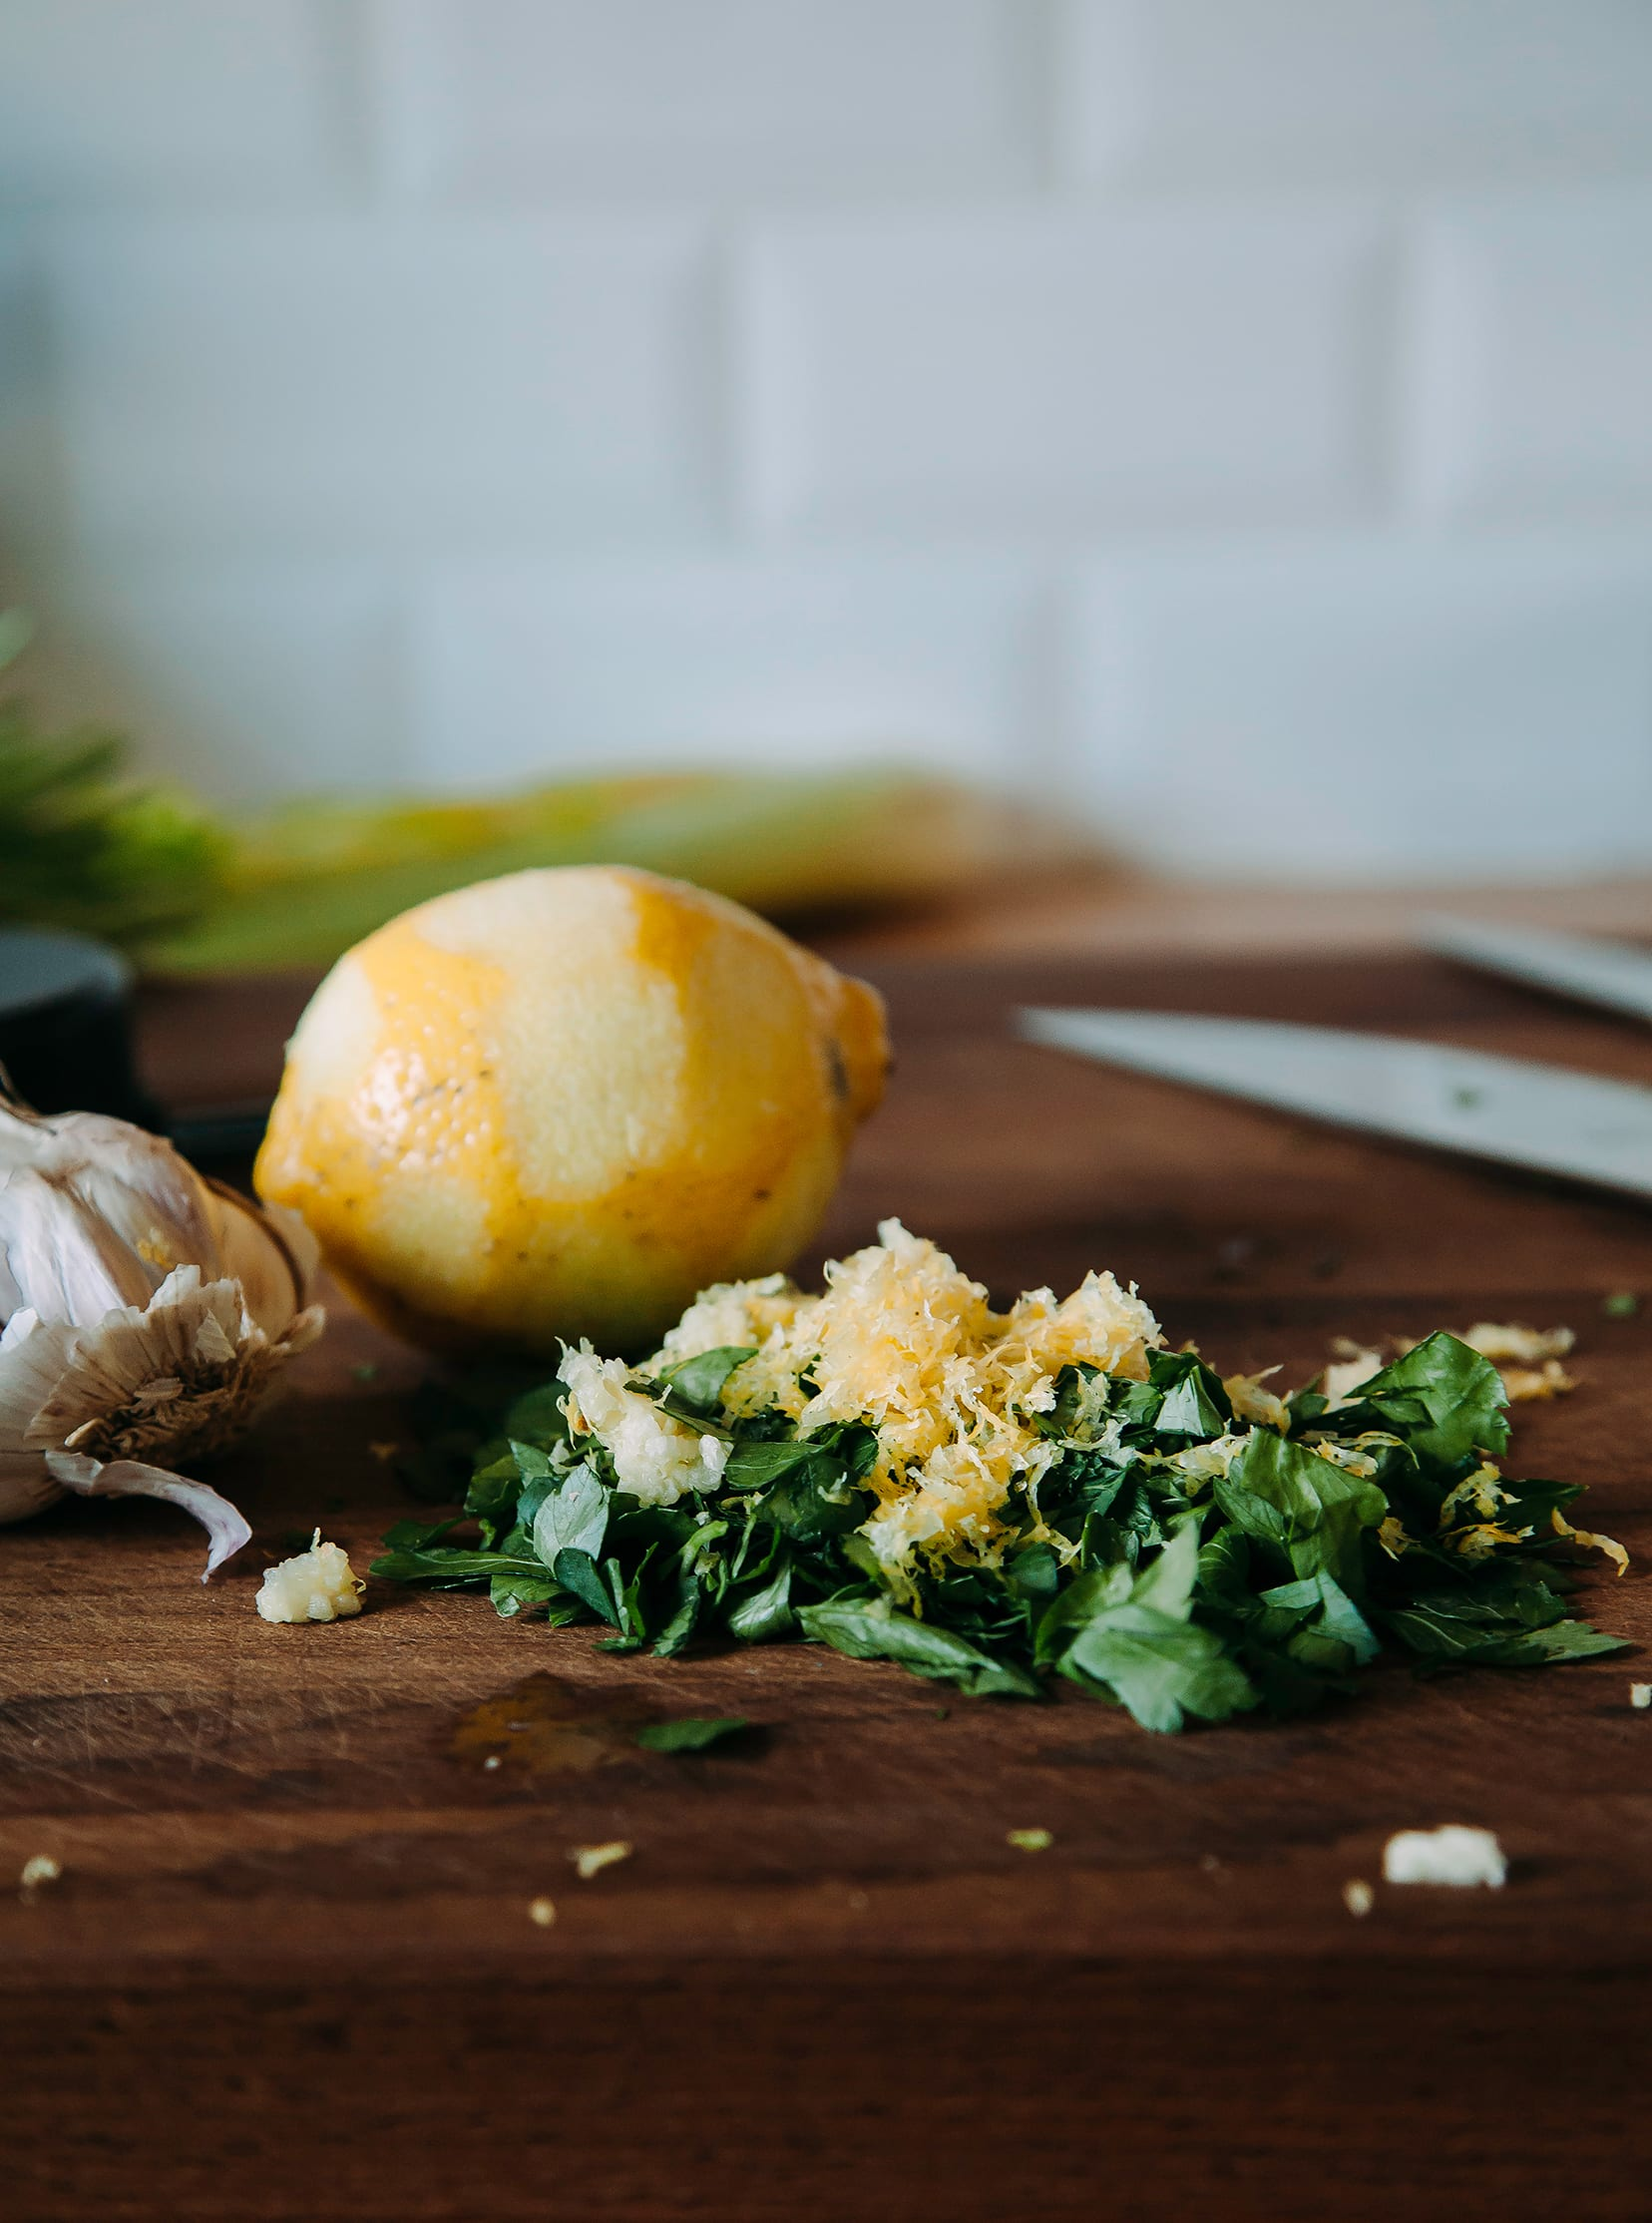 An up close shot of lemon zest mixed with chopped parsley on a cutting board.